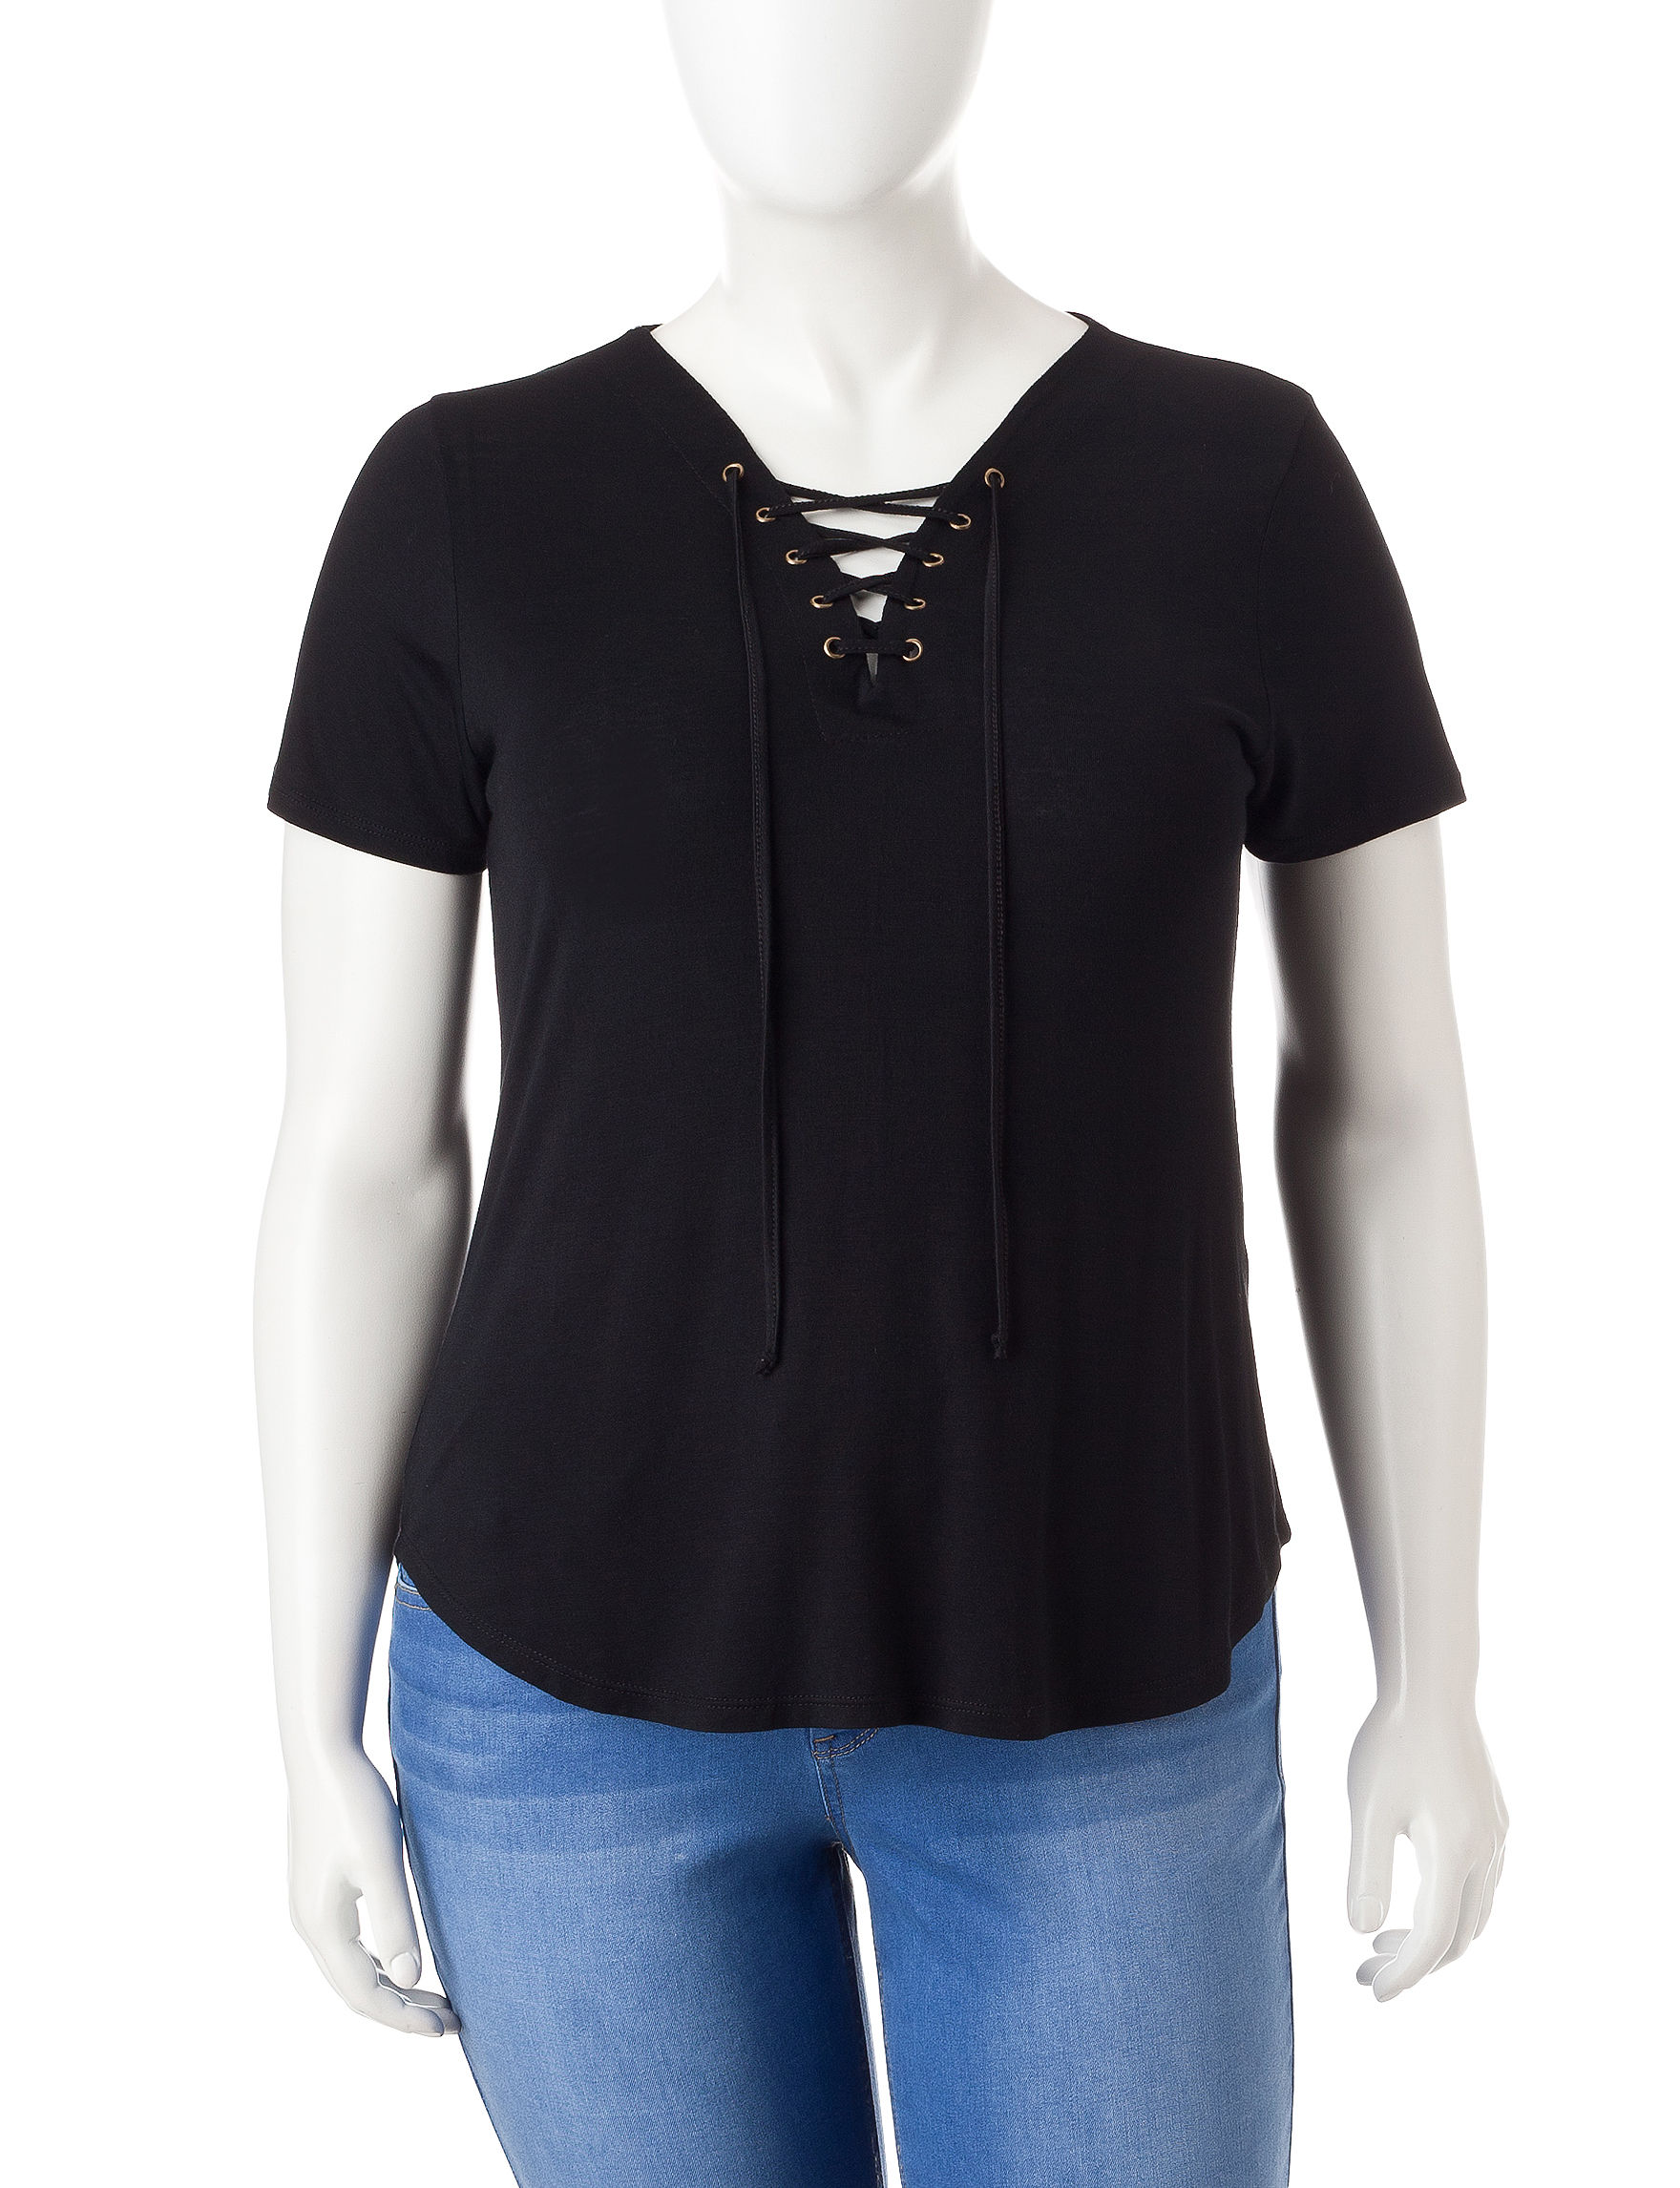 Extra Touch Black Shirts & Blouses